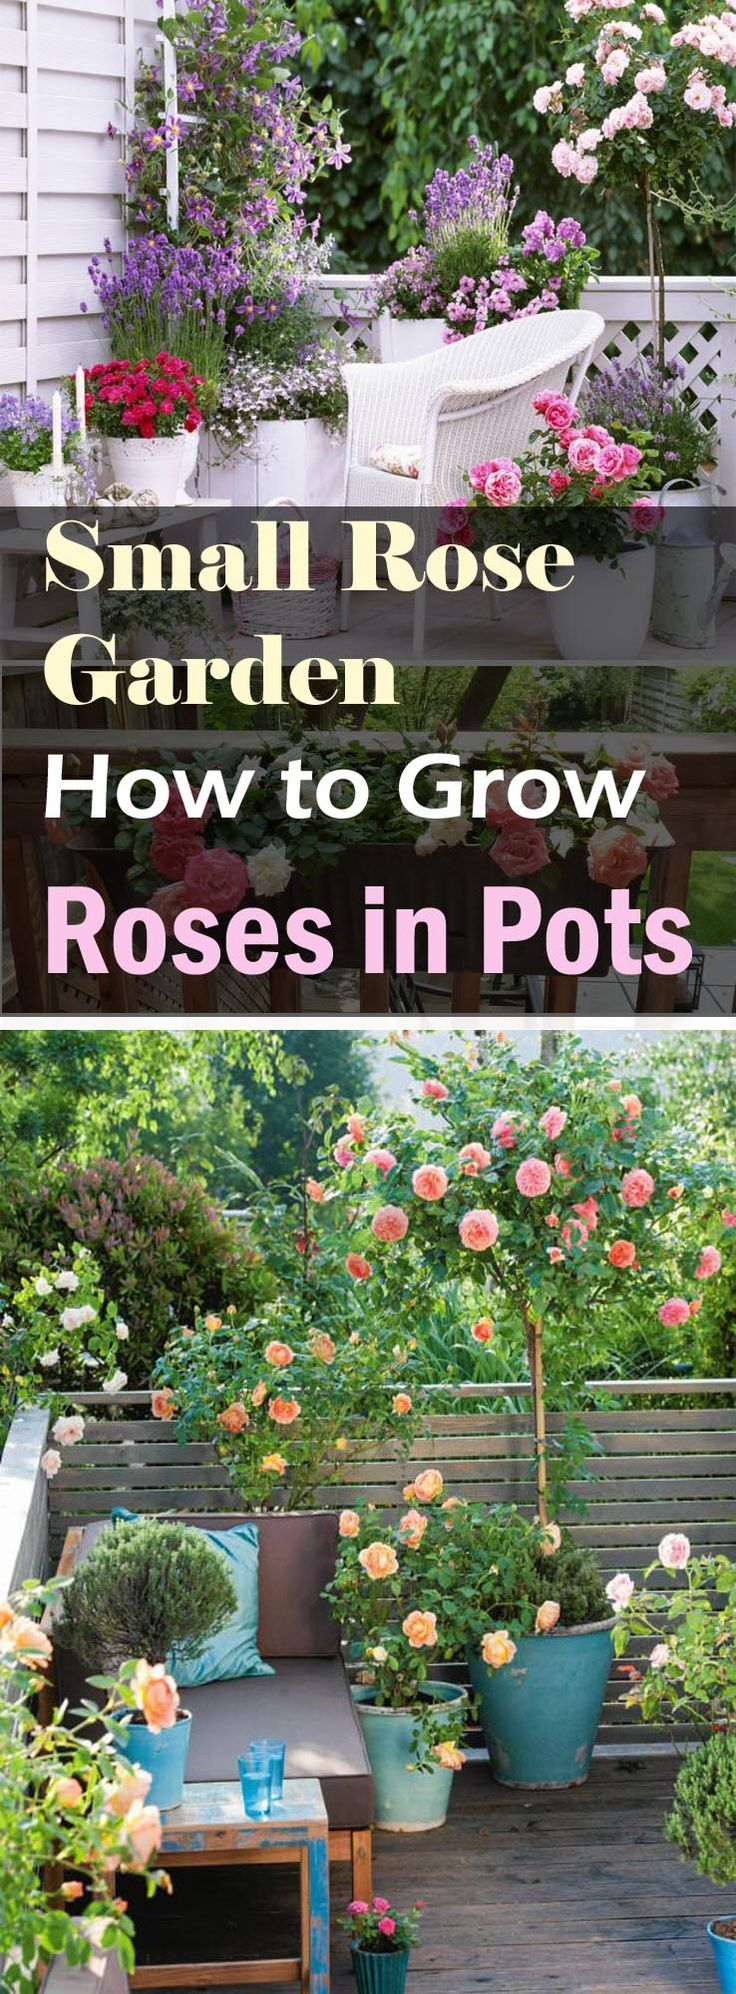 If you have a limited space and you want to create a small rose garden there then growing roses in containers is the best option for you.